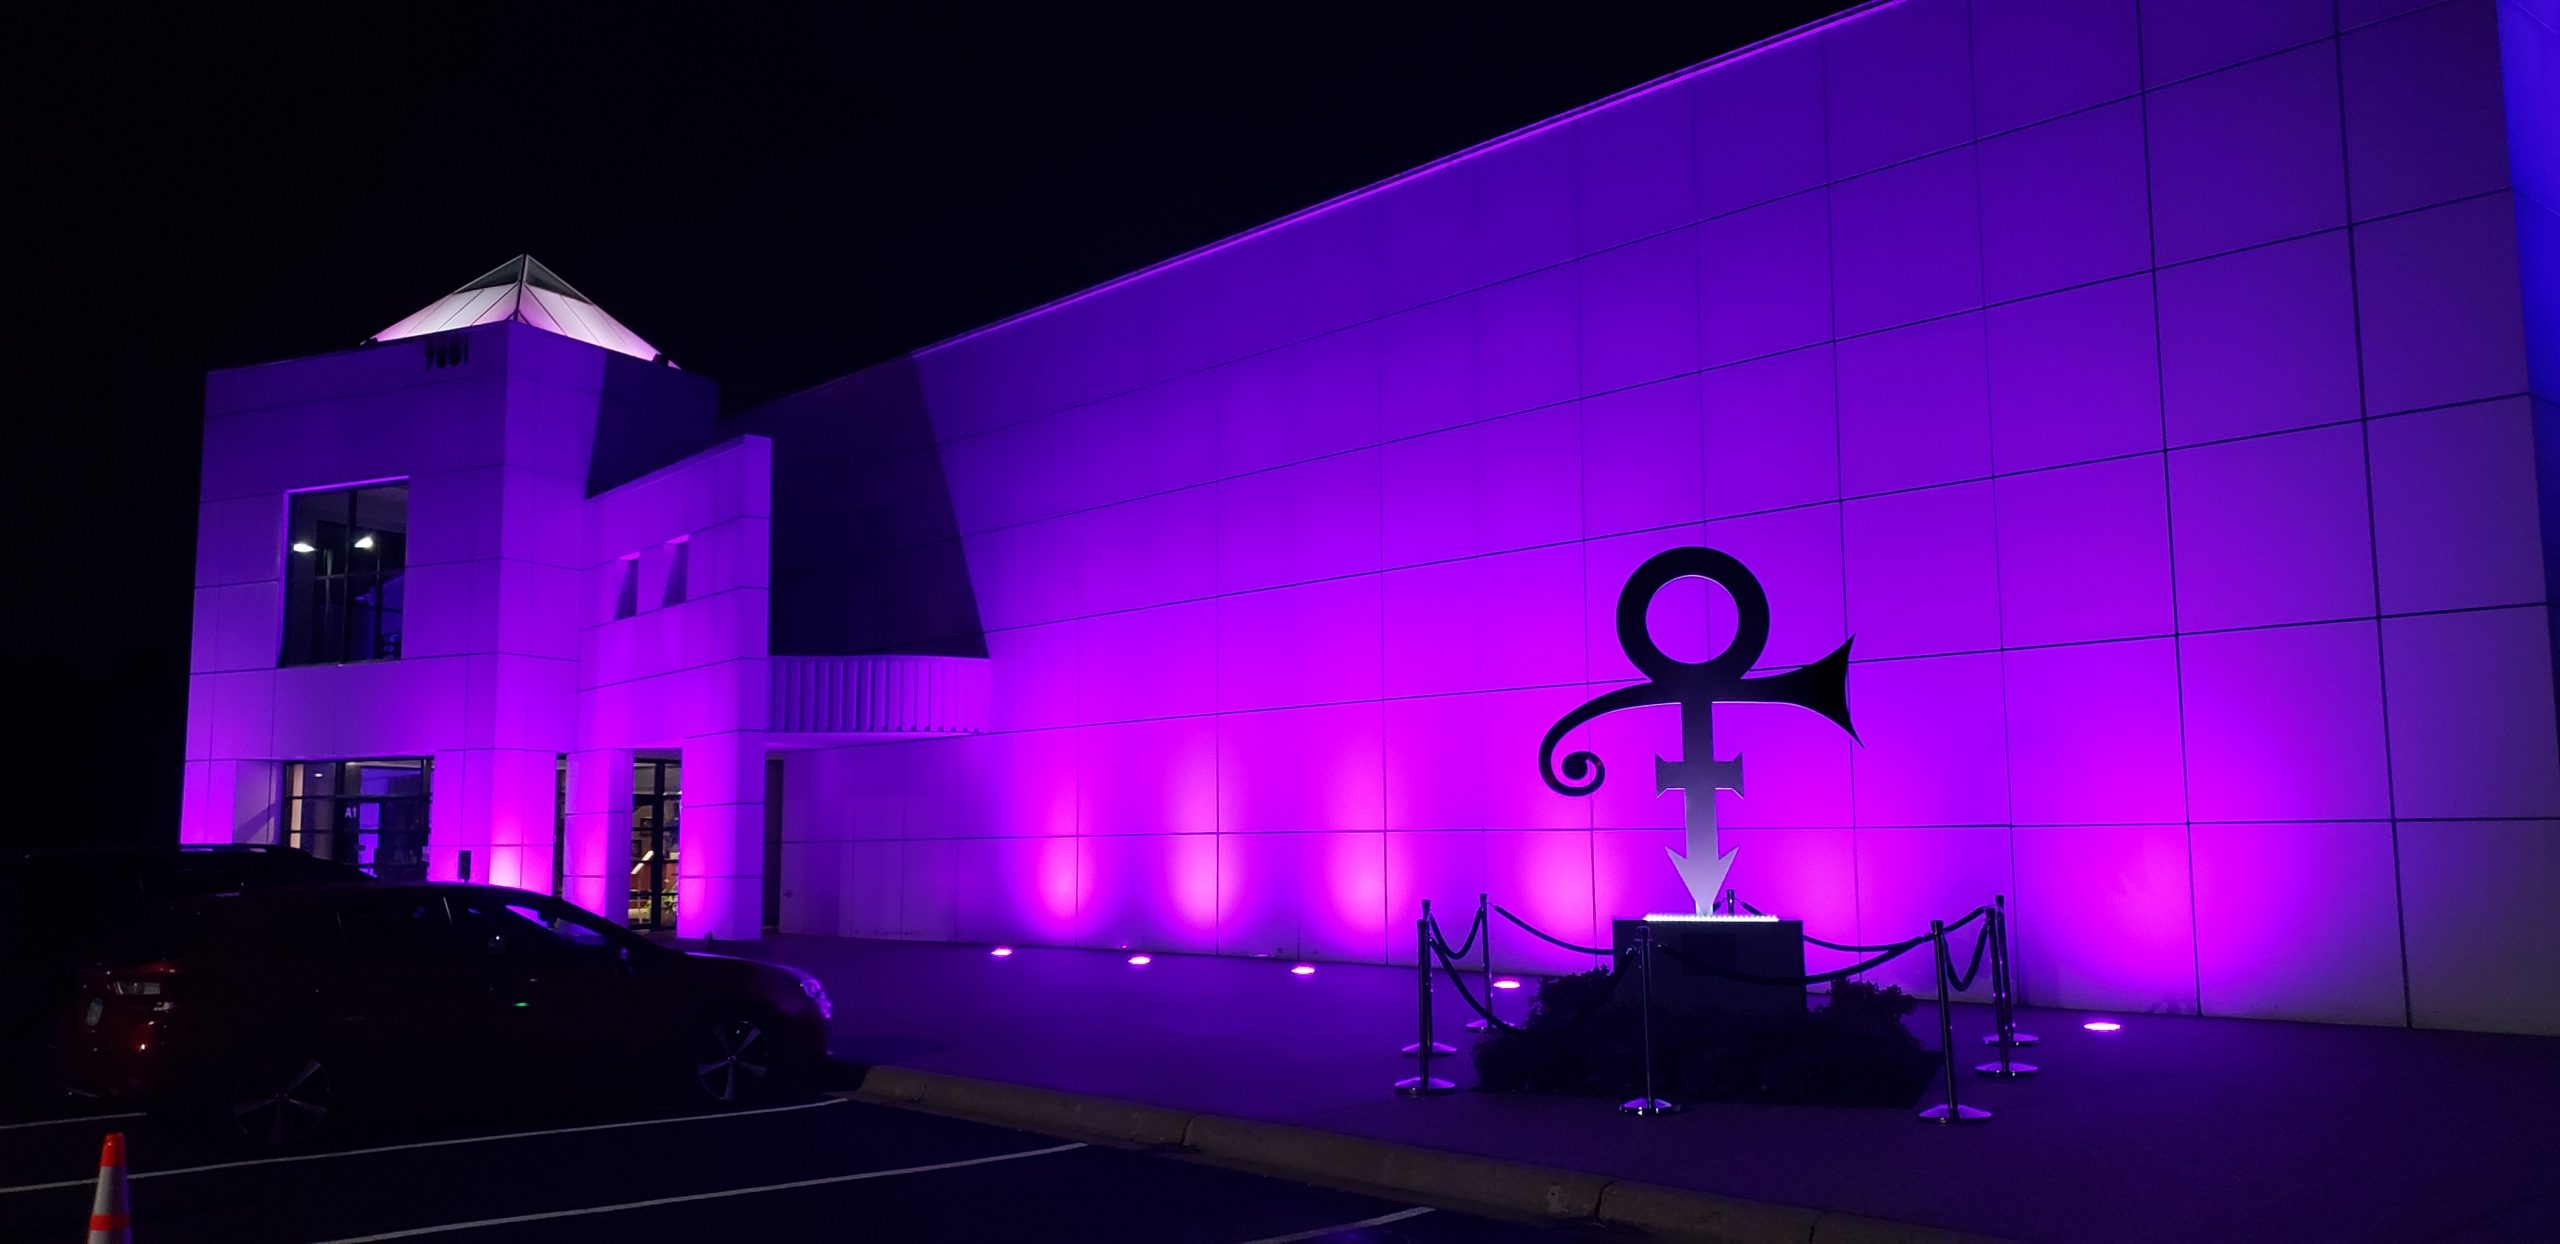 Prince's Paisley Park and Mycotoo on the Transformation of Visitor Experience – Mycotoo